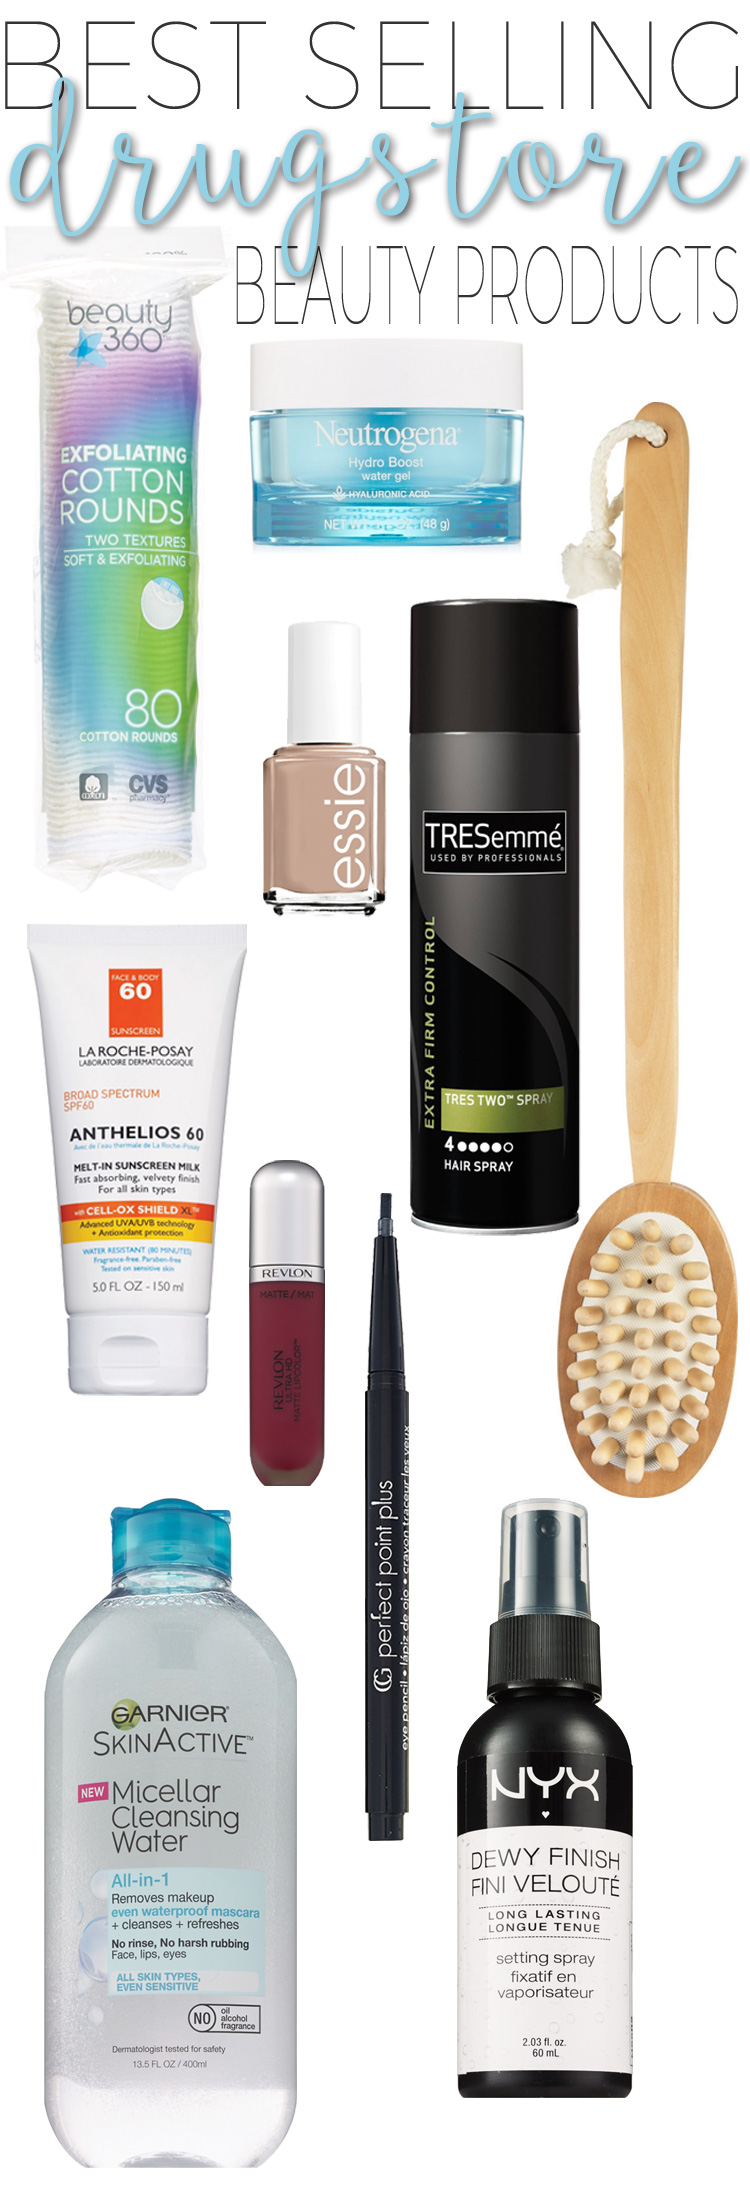 Top 10 Best-Selling Drugstore Beauty Products.